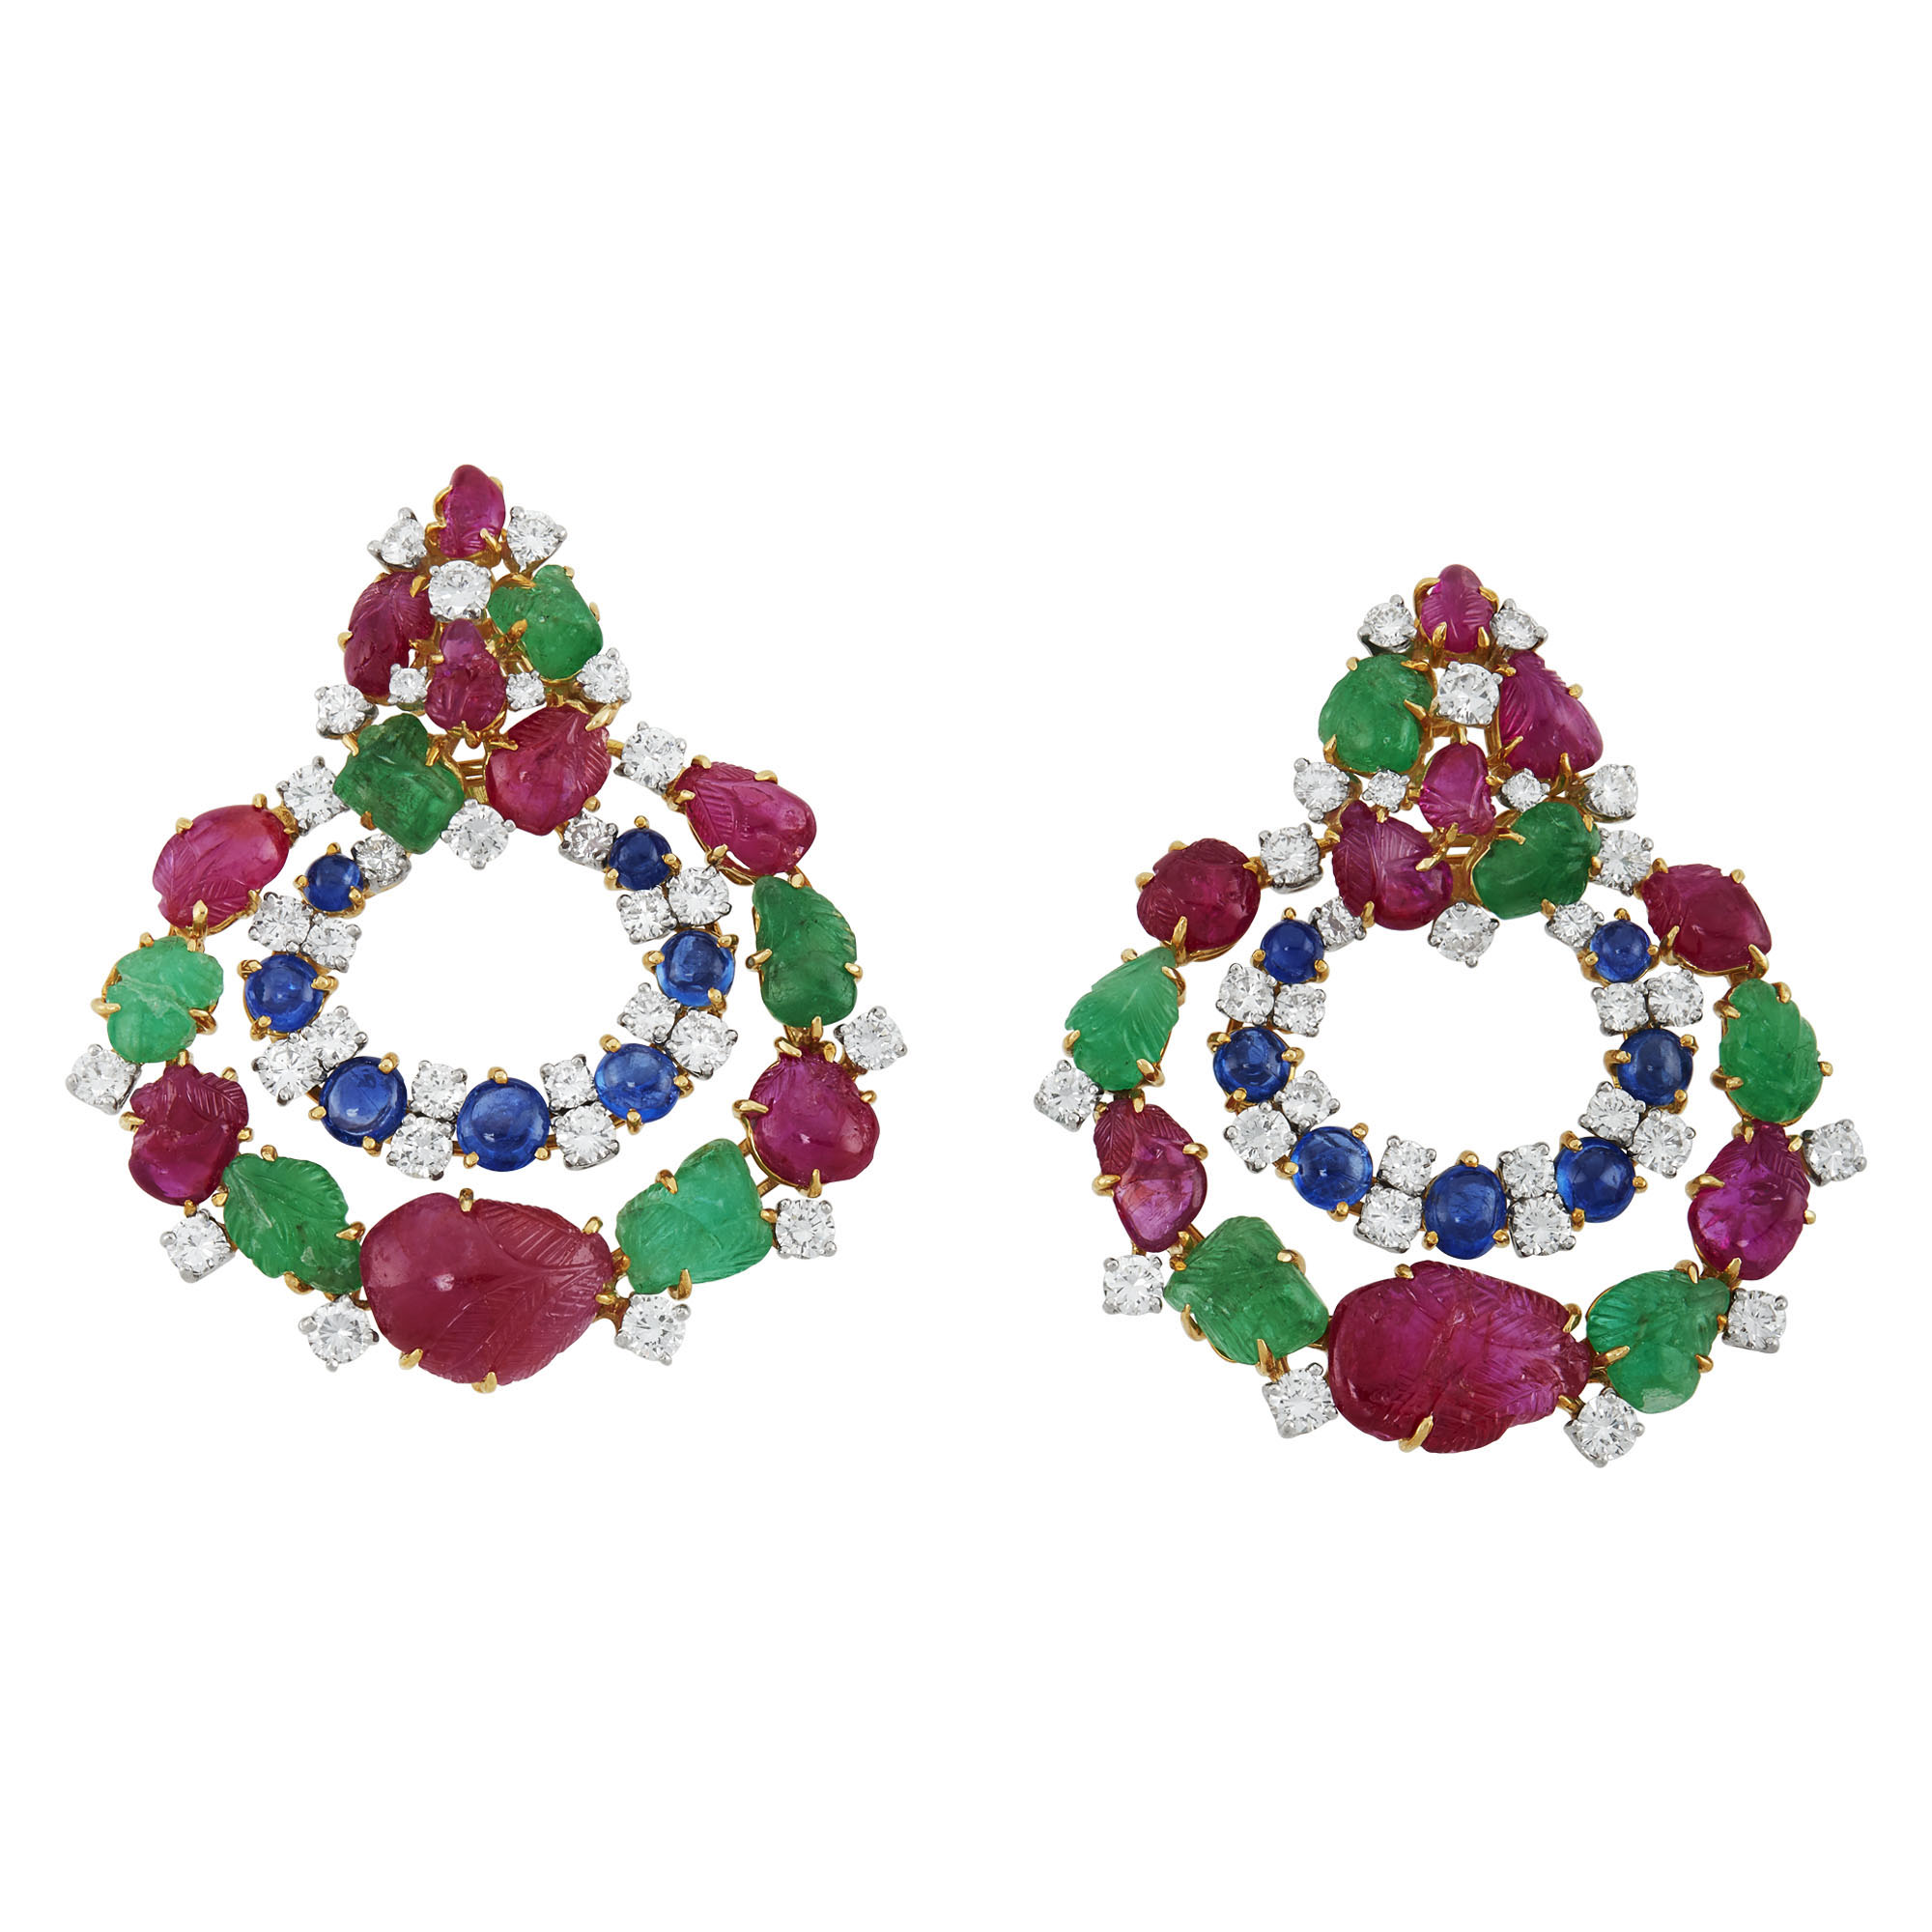 Lot image - Pair of Gold, Platinum, Diamond, Sapphire, Carved Ruby and Emerald Pendant Earrings, David Webb